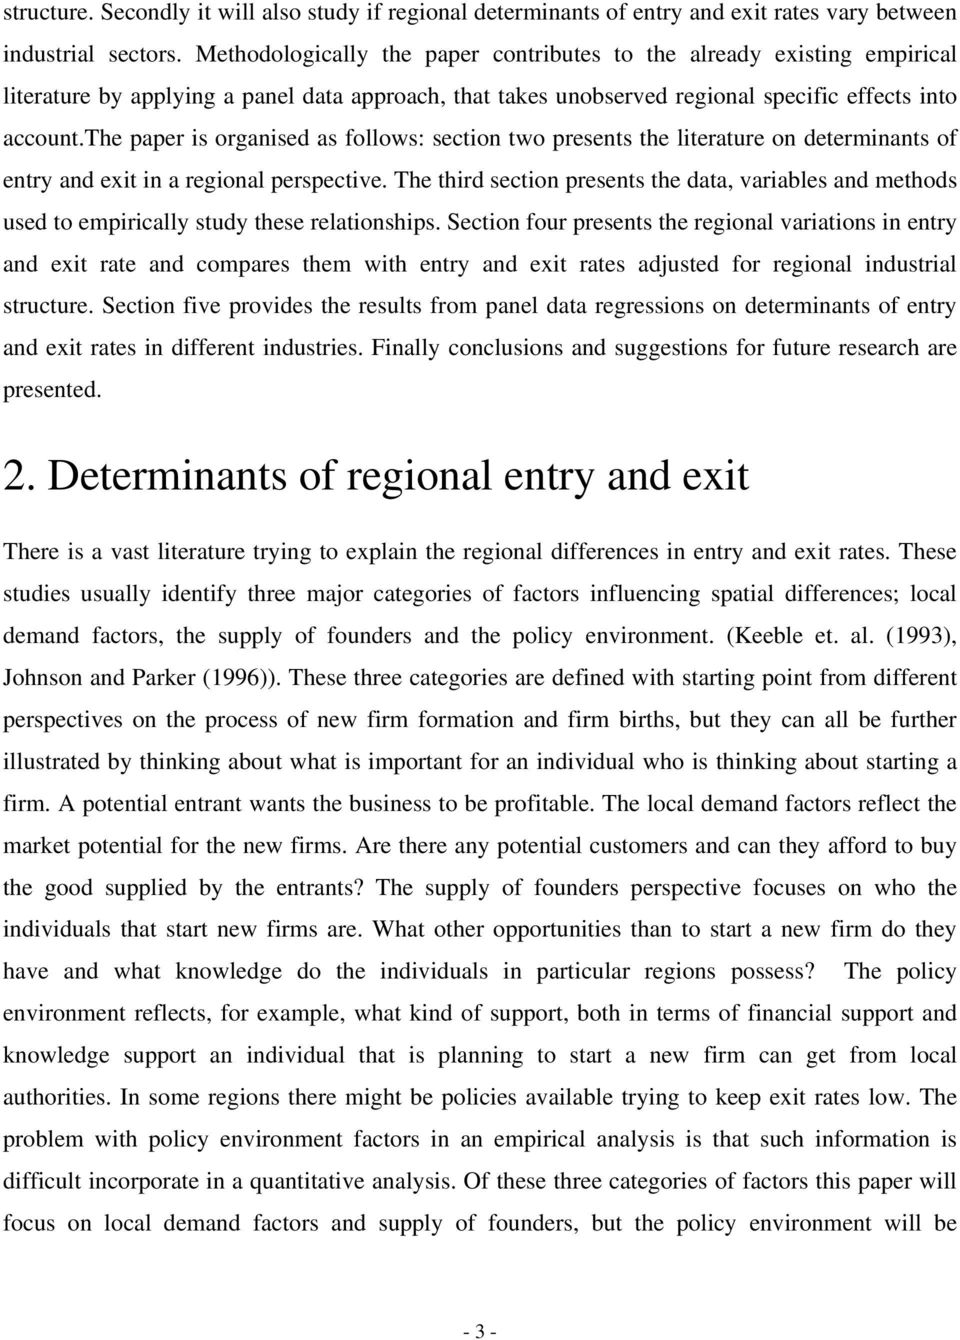 the paper is organised as follows: section two presents the literature on determinants of entry and exit in a regional perspective.